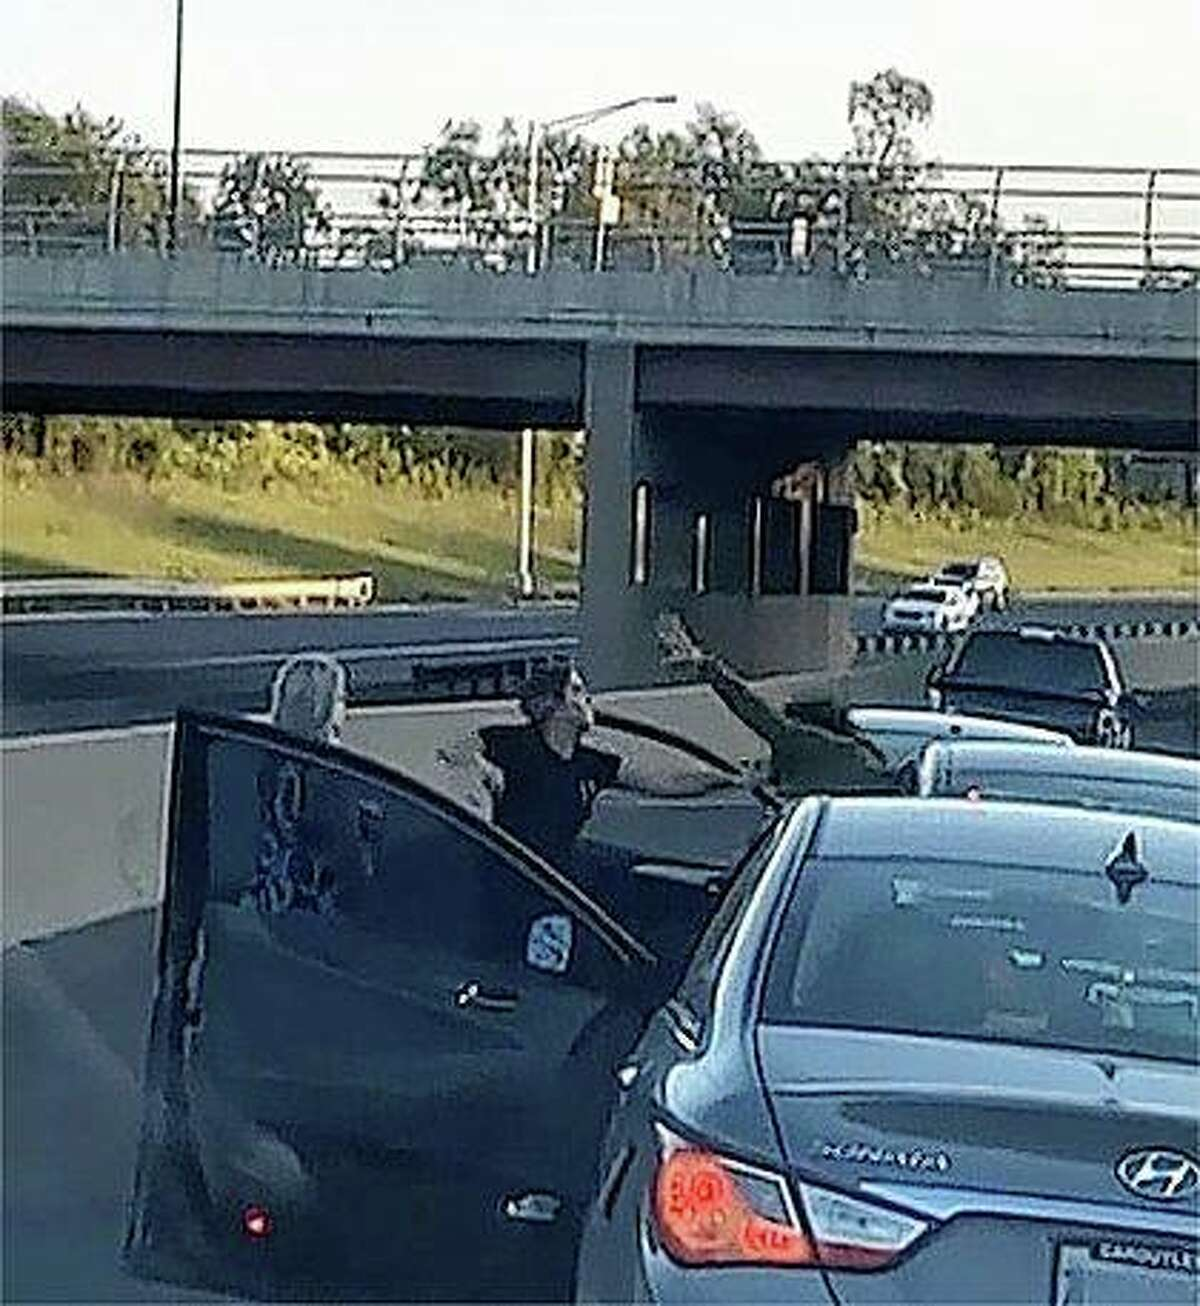 A screen capture from a YouTube video shows an altercation that is believed to the result of road rage.